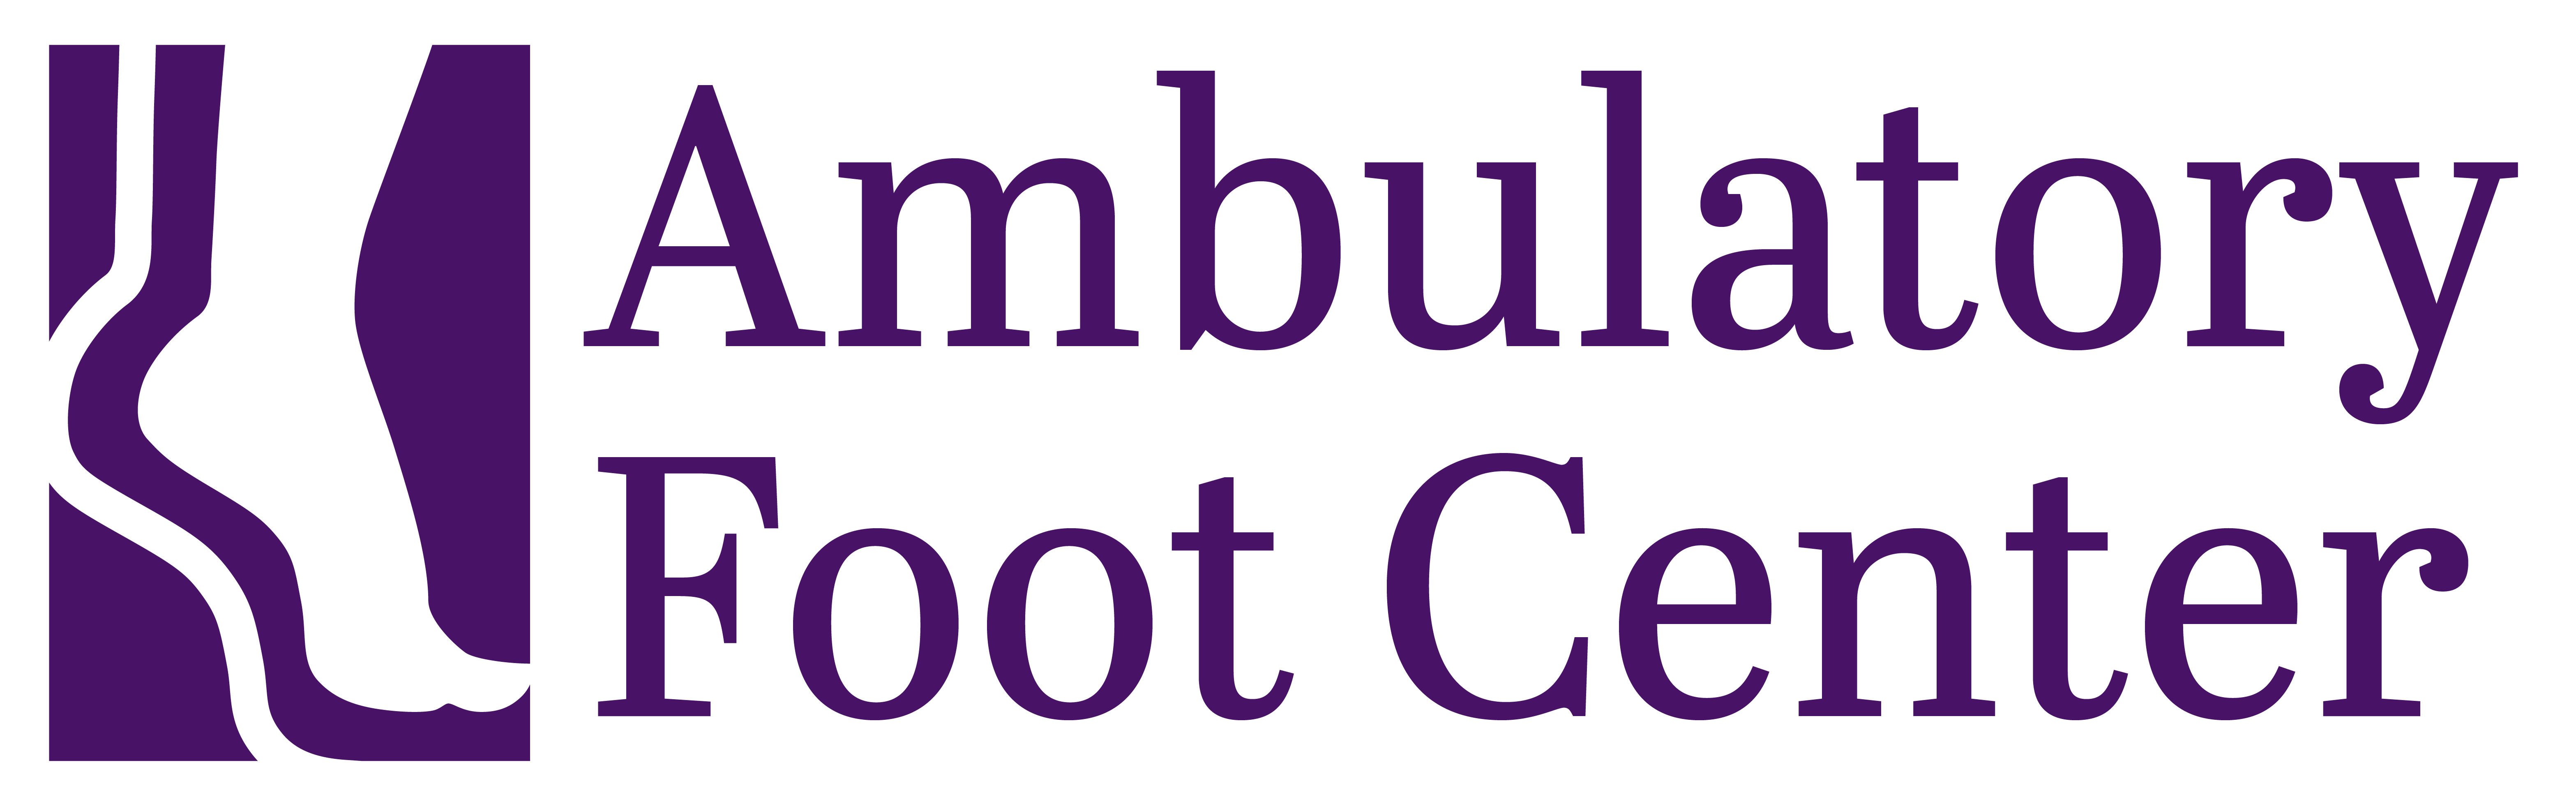 Ambulatory Foot Center Logo